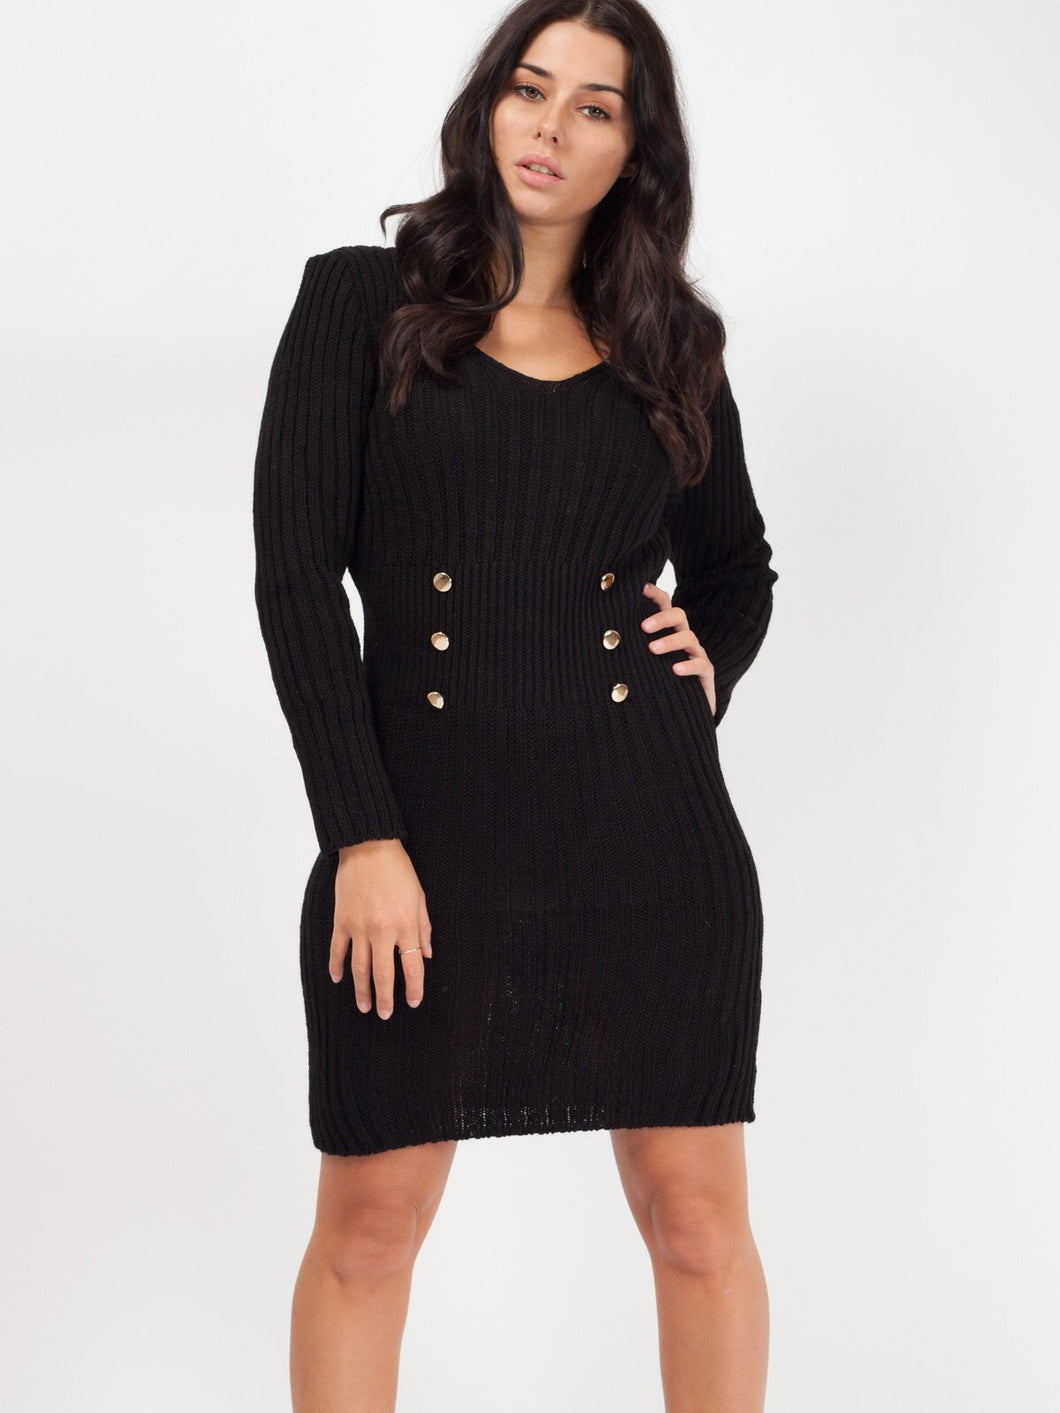 ROSIE BLACK BUTTON FRONT KNITTED DRESS